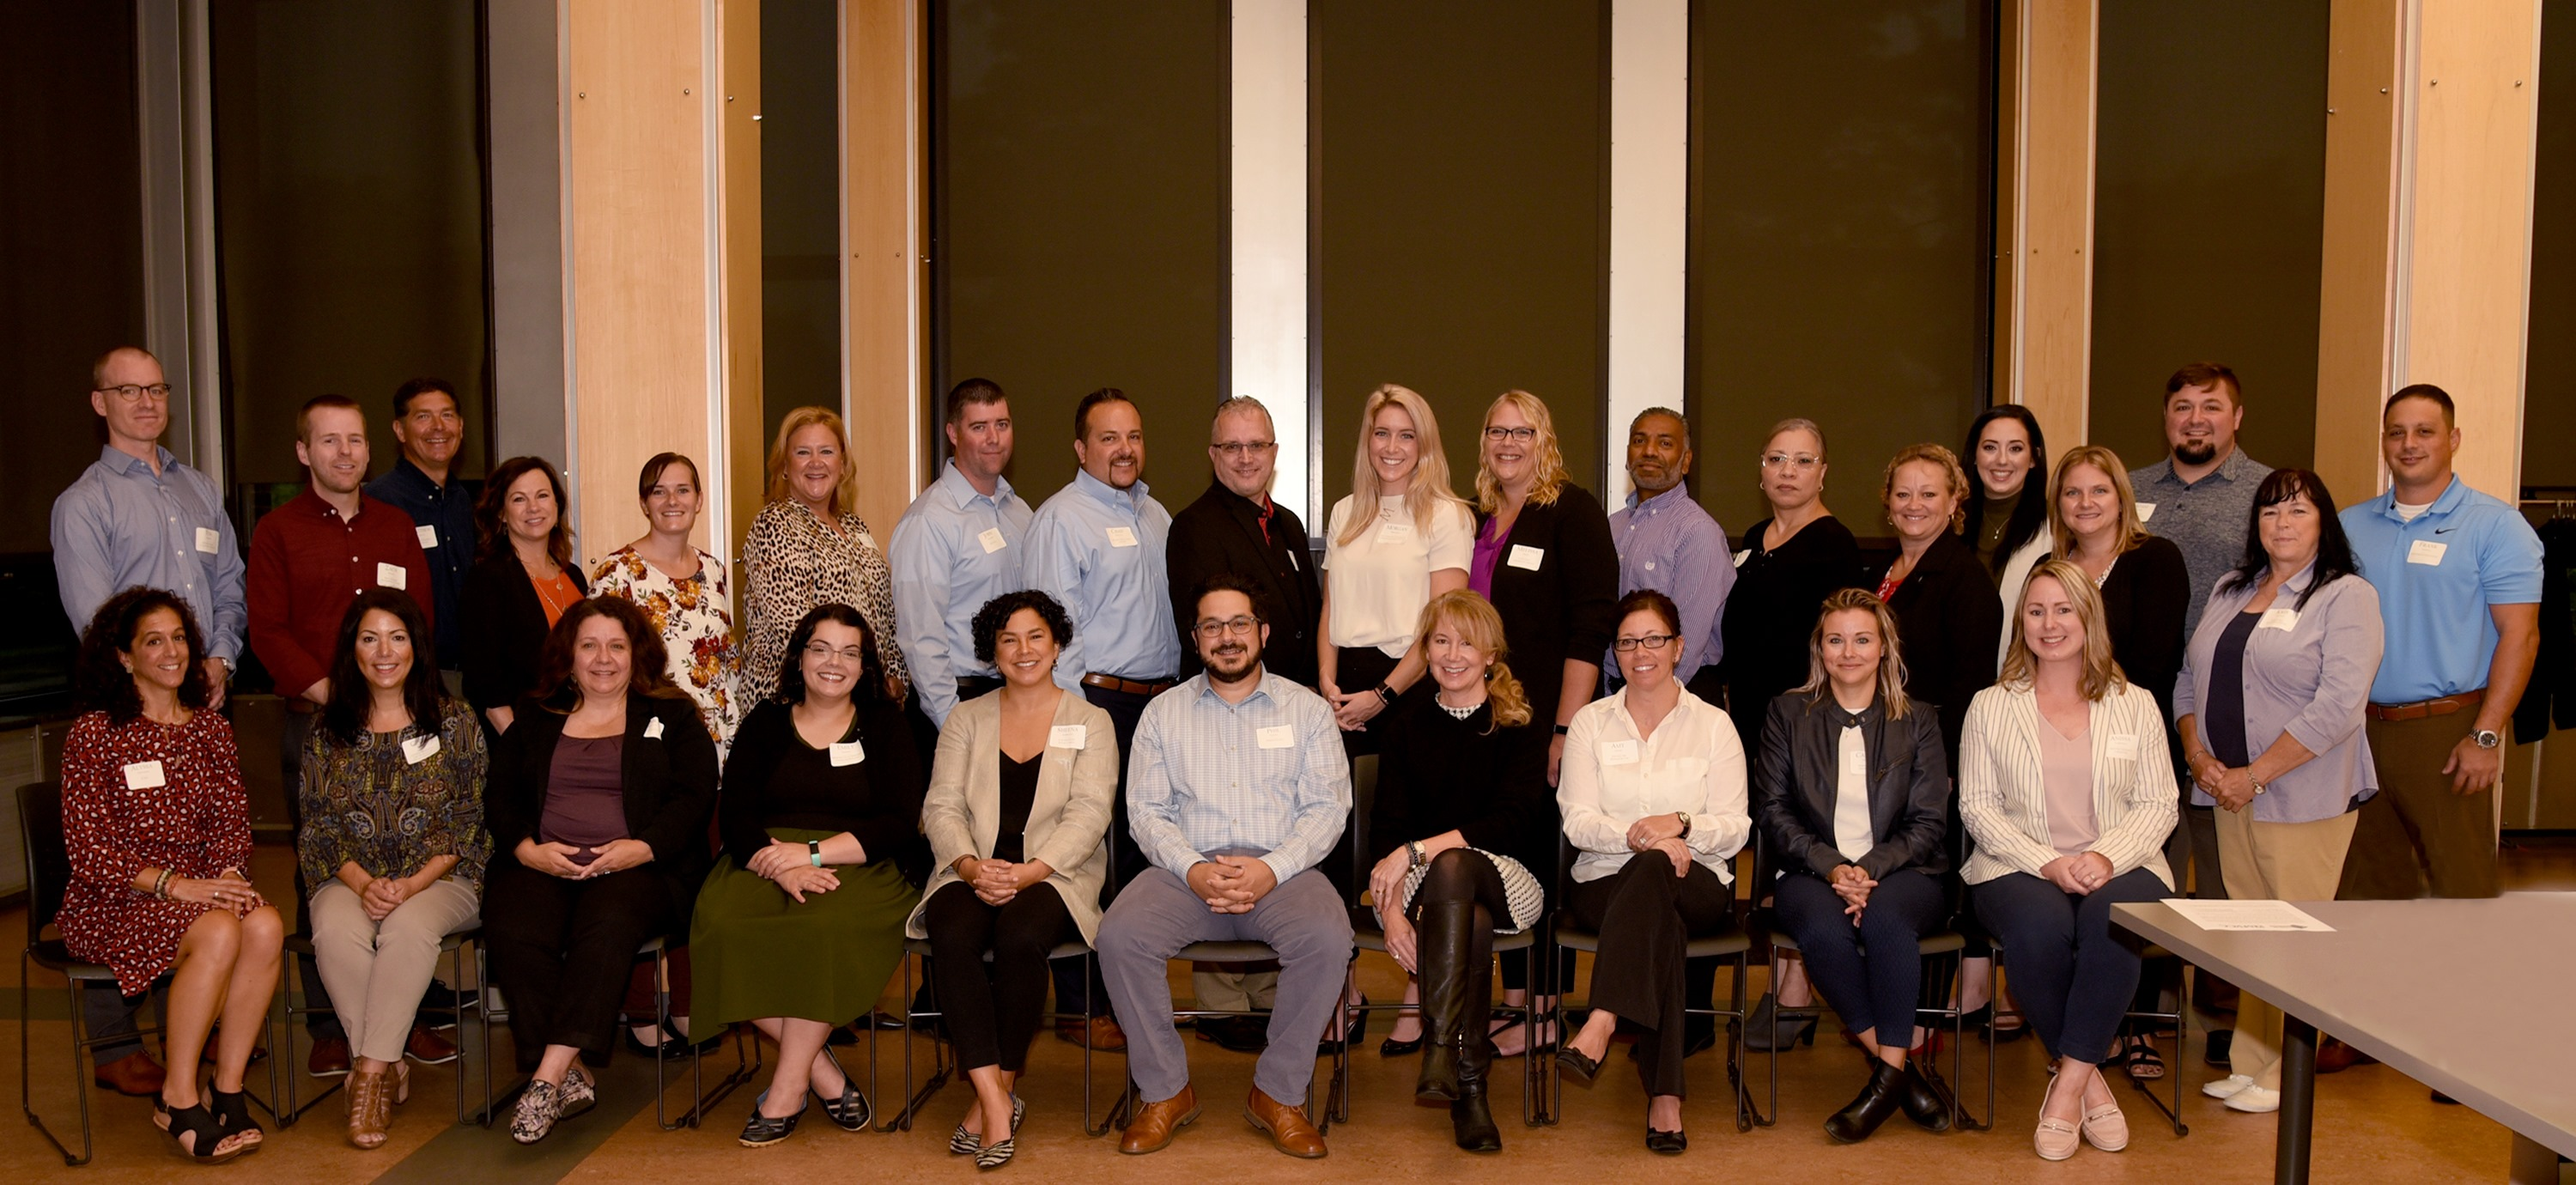 The Center for Leadership Excellence: Developing Strong Leaders